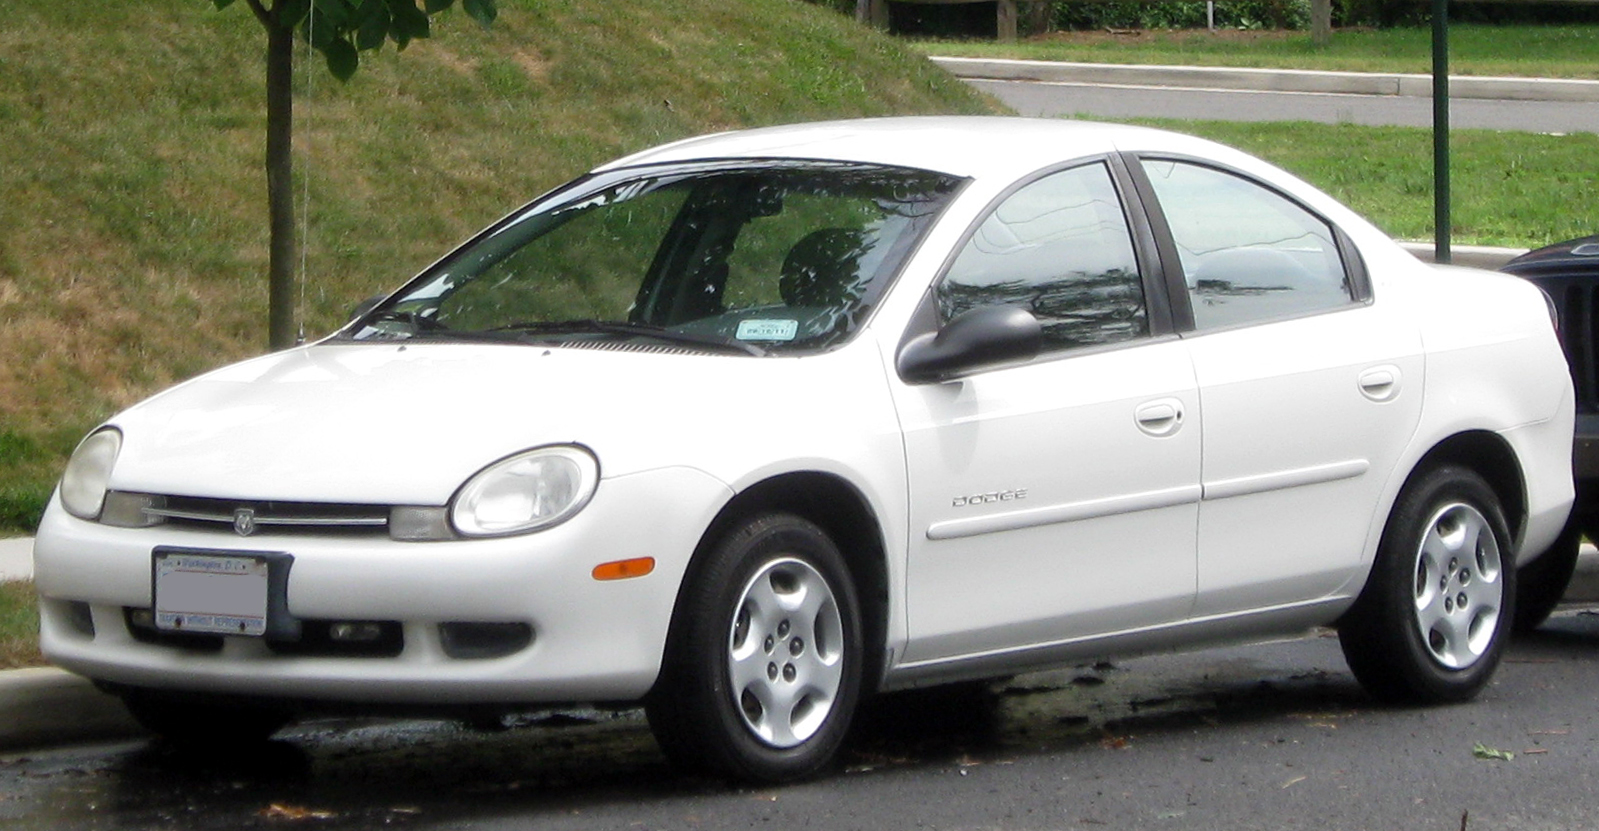 Chrysler Neon - WikipediaWikipedia